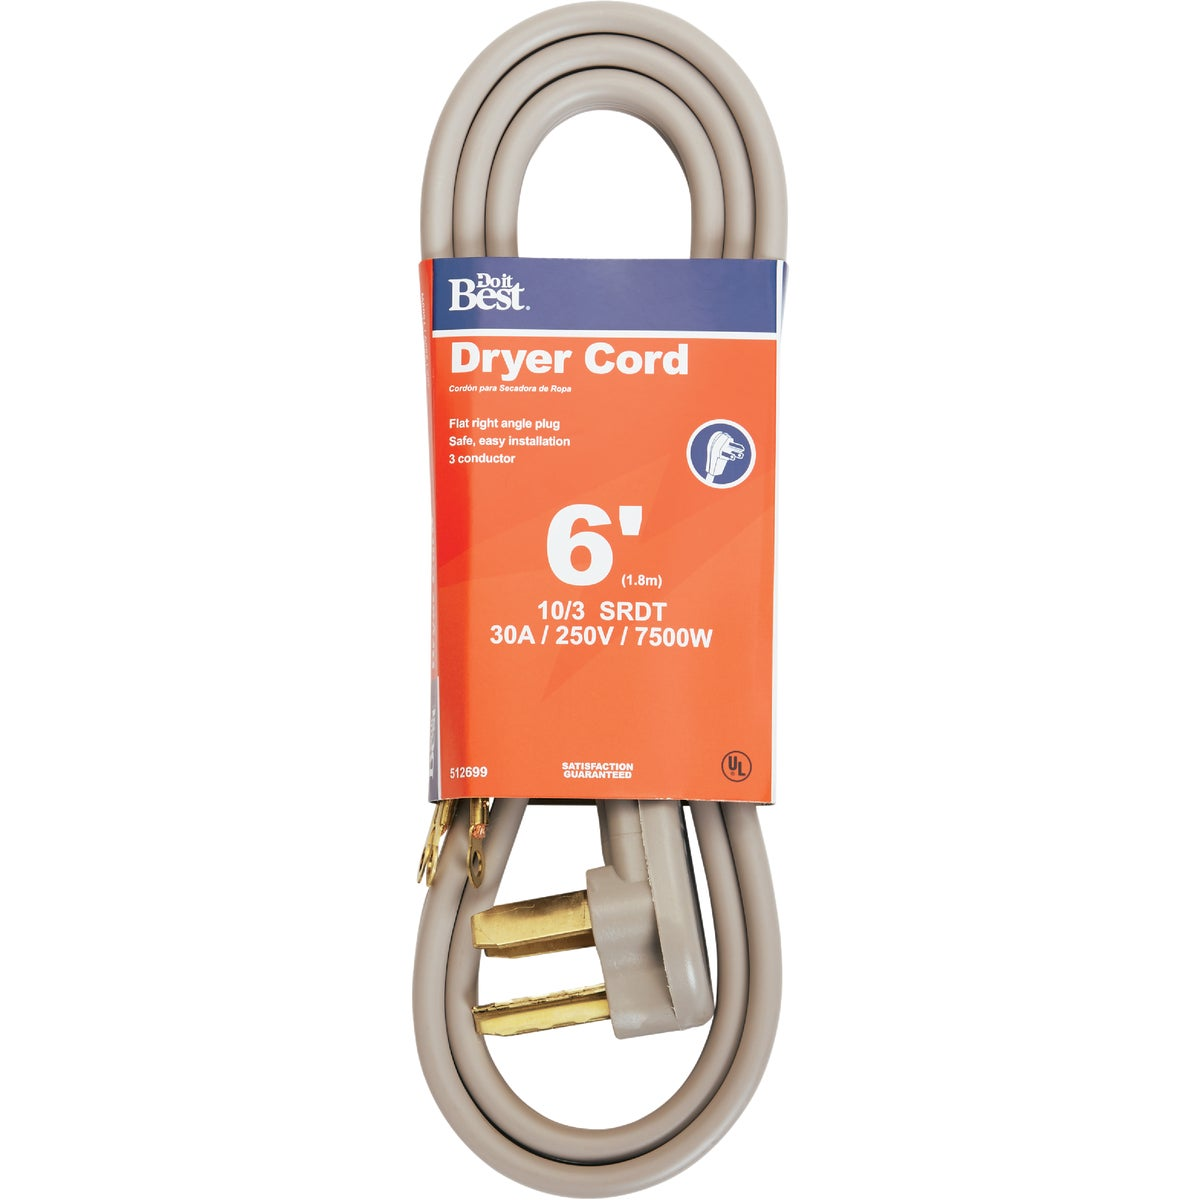 6' 10/3 DRYER CORD - 550976 by Coleman Cable Hwg